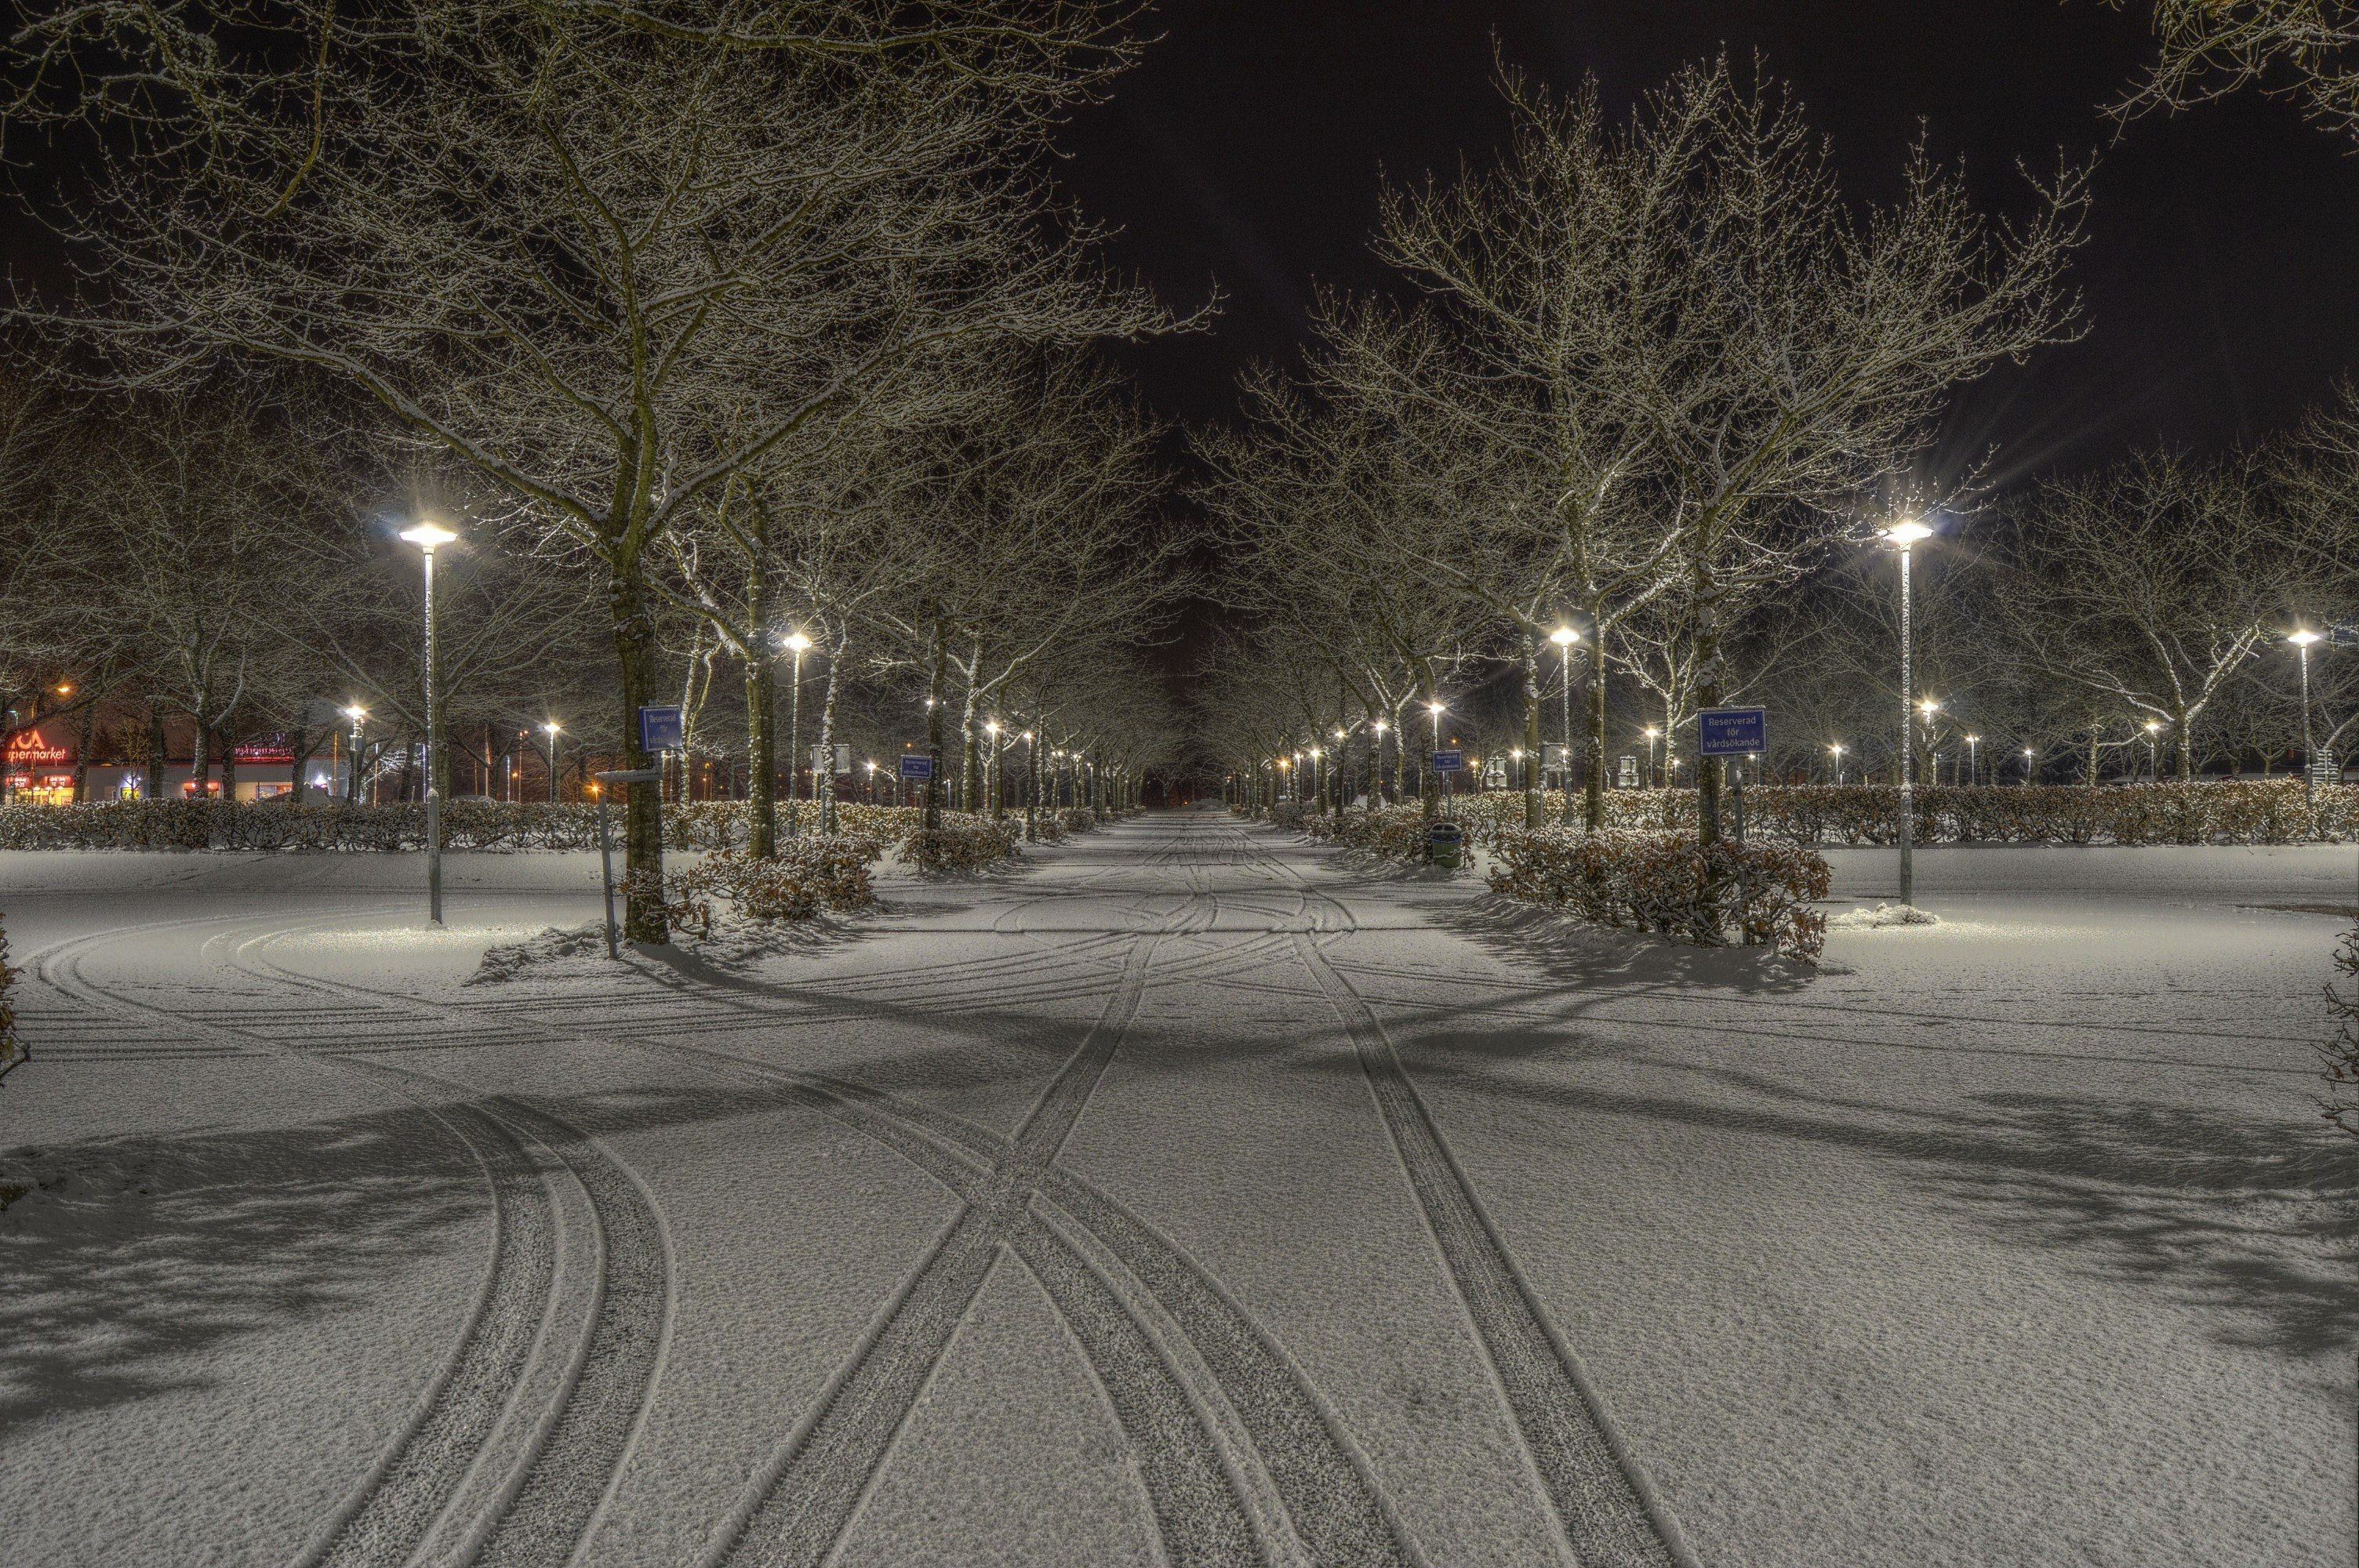 I can still remember the snow that night   Source: Pexels